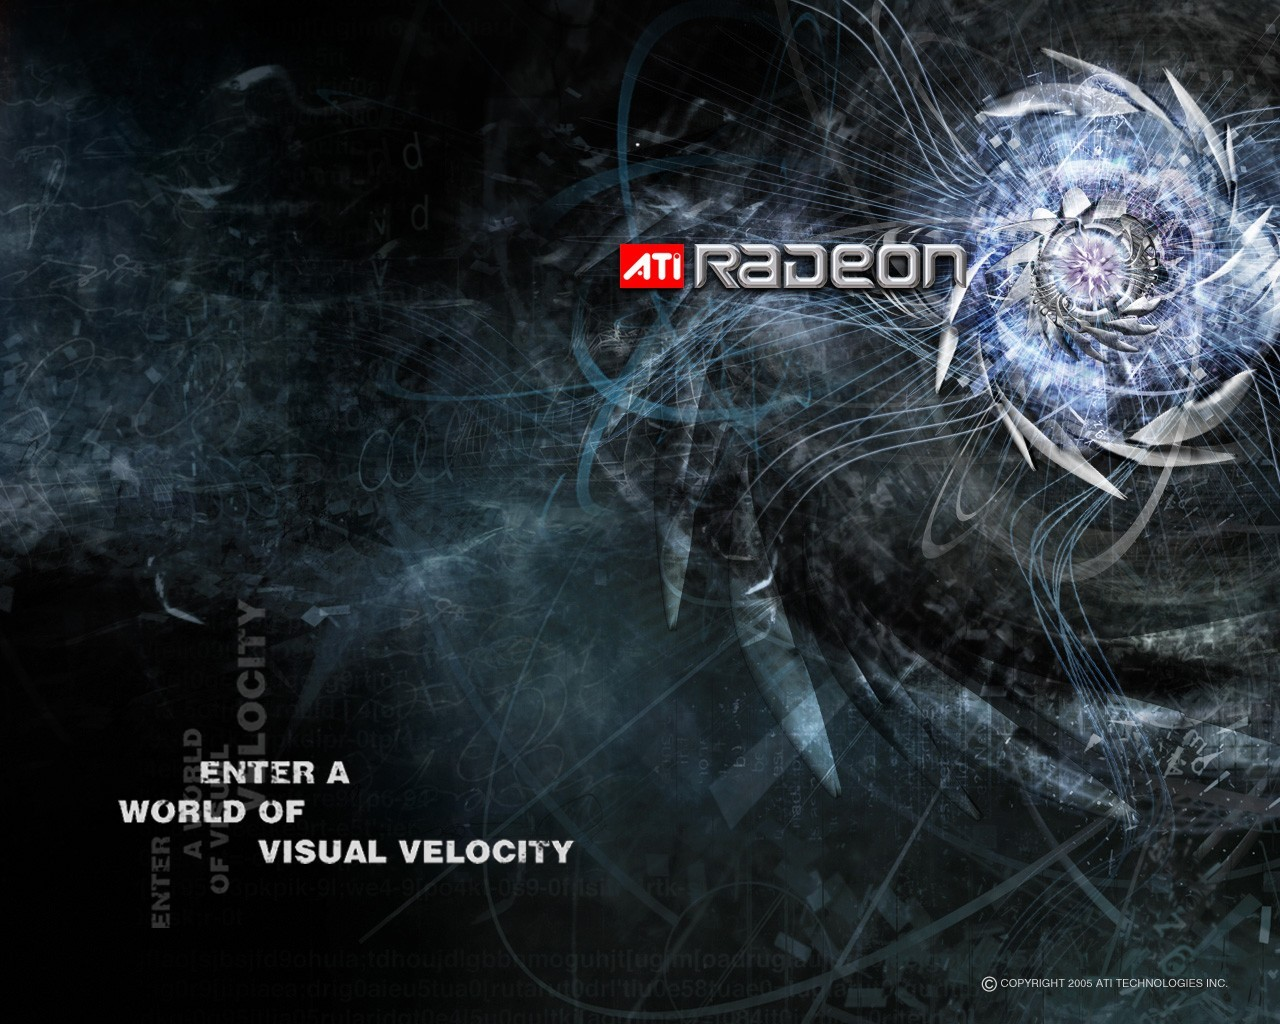 Wallpapers download backgrounds pictures images ati radeon 1280x1024